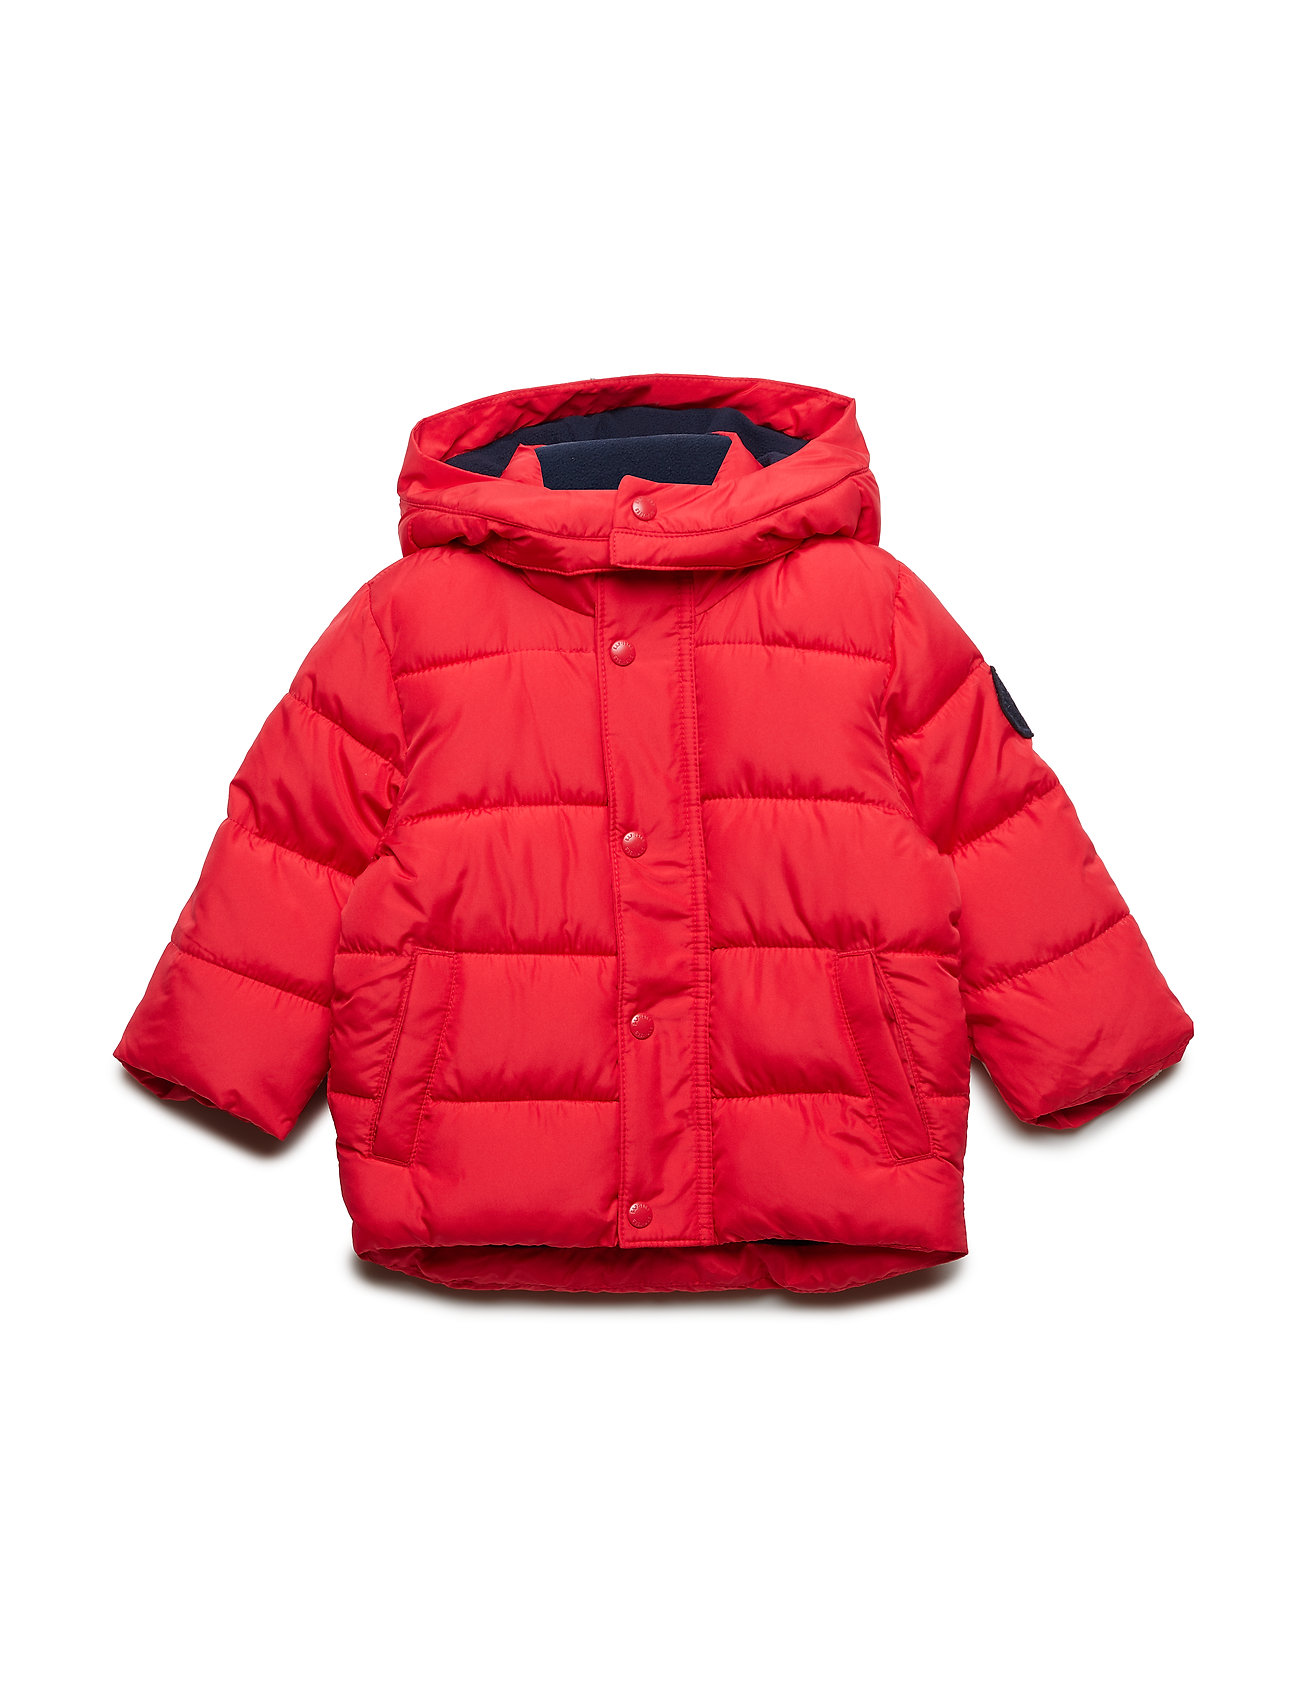 GAP WARMEST JACKET - PURE RED V2